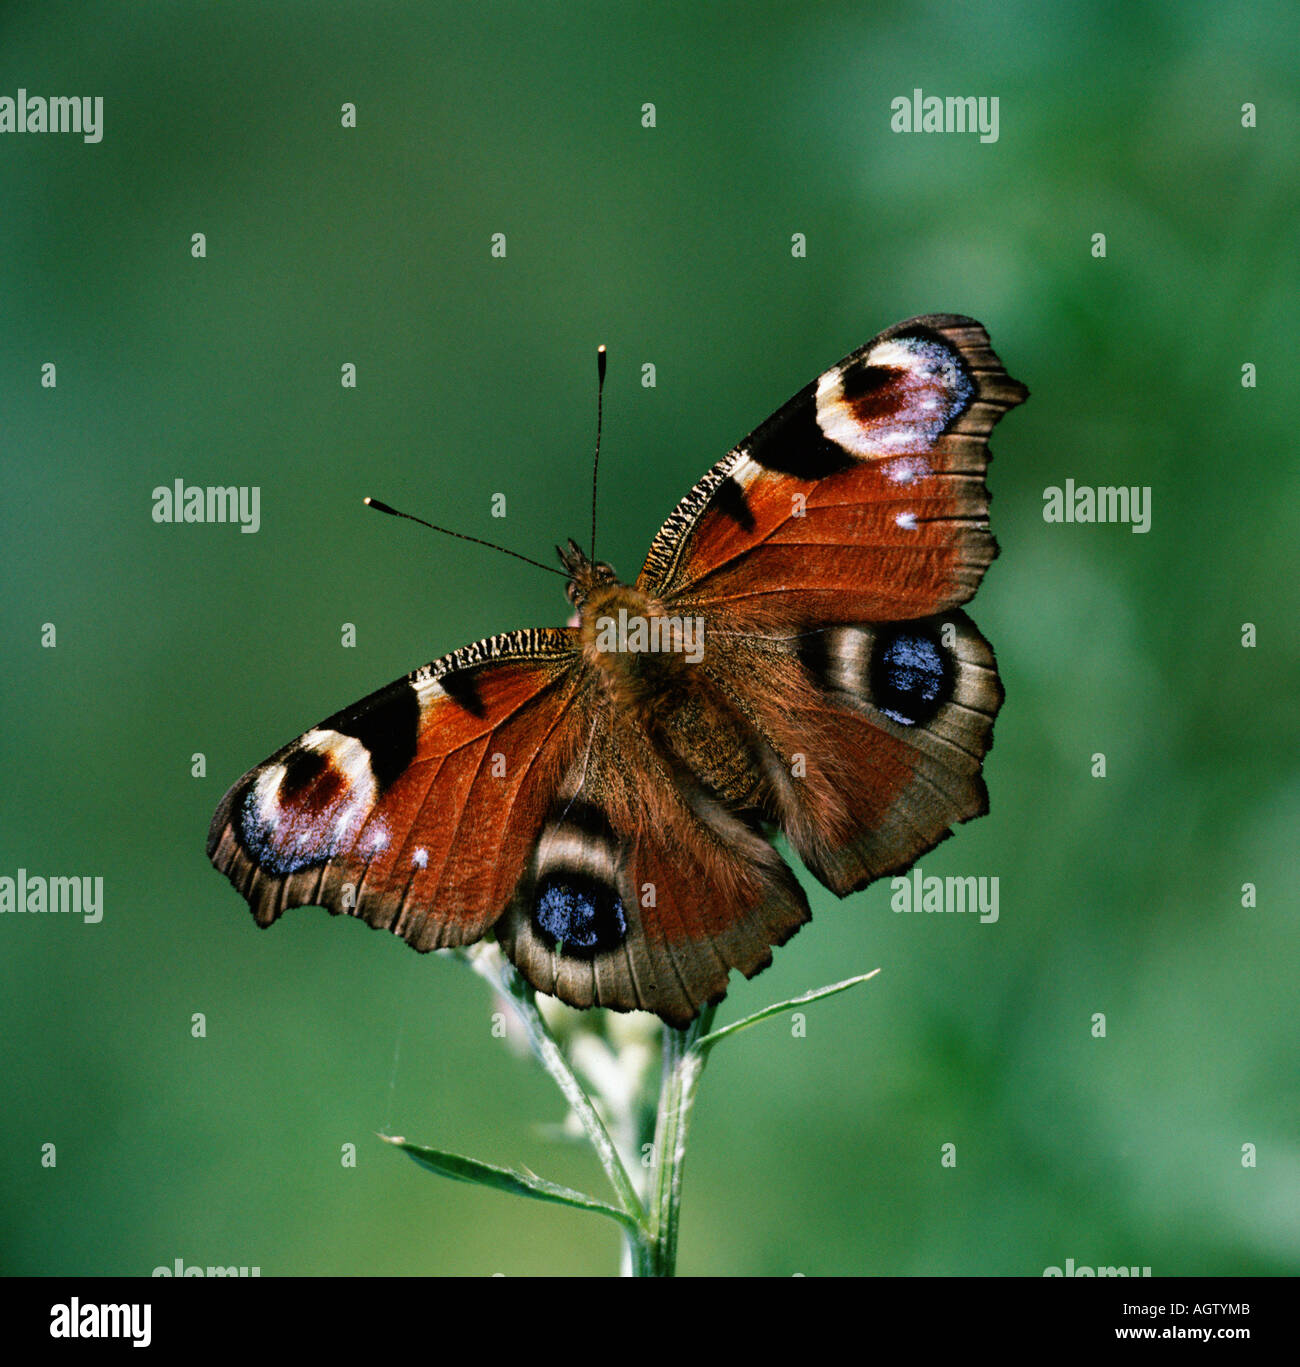 Peacock Butterlfy - Stock Image